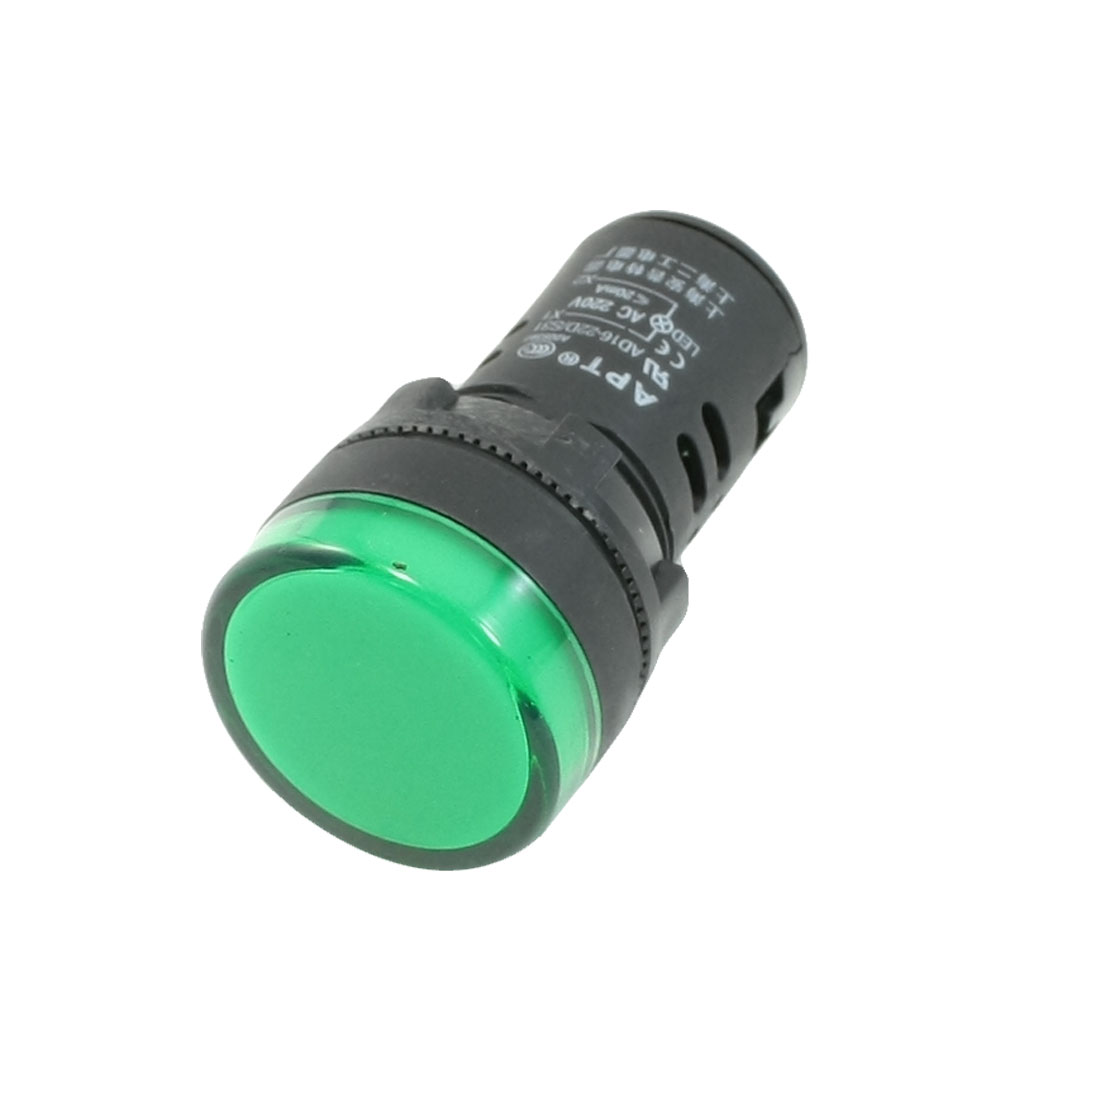 AD16-22D/S31 Energy Saving LED Indicator Signal Light Green AC 220V